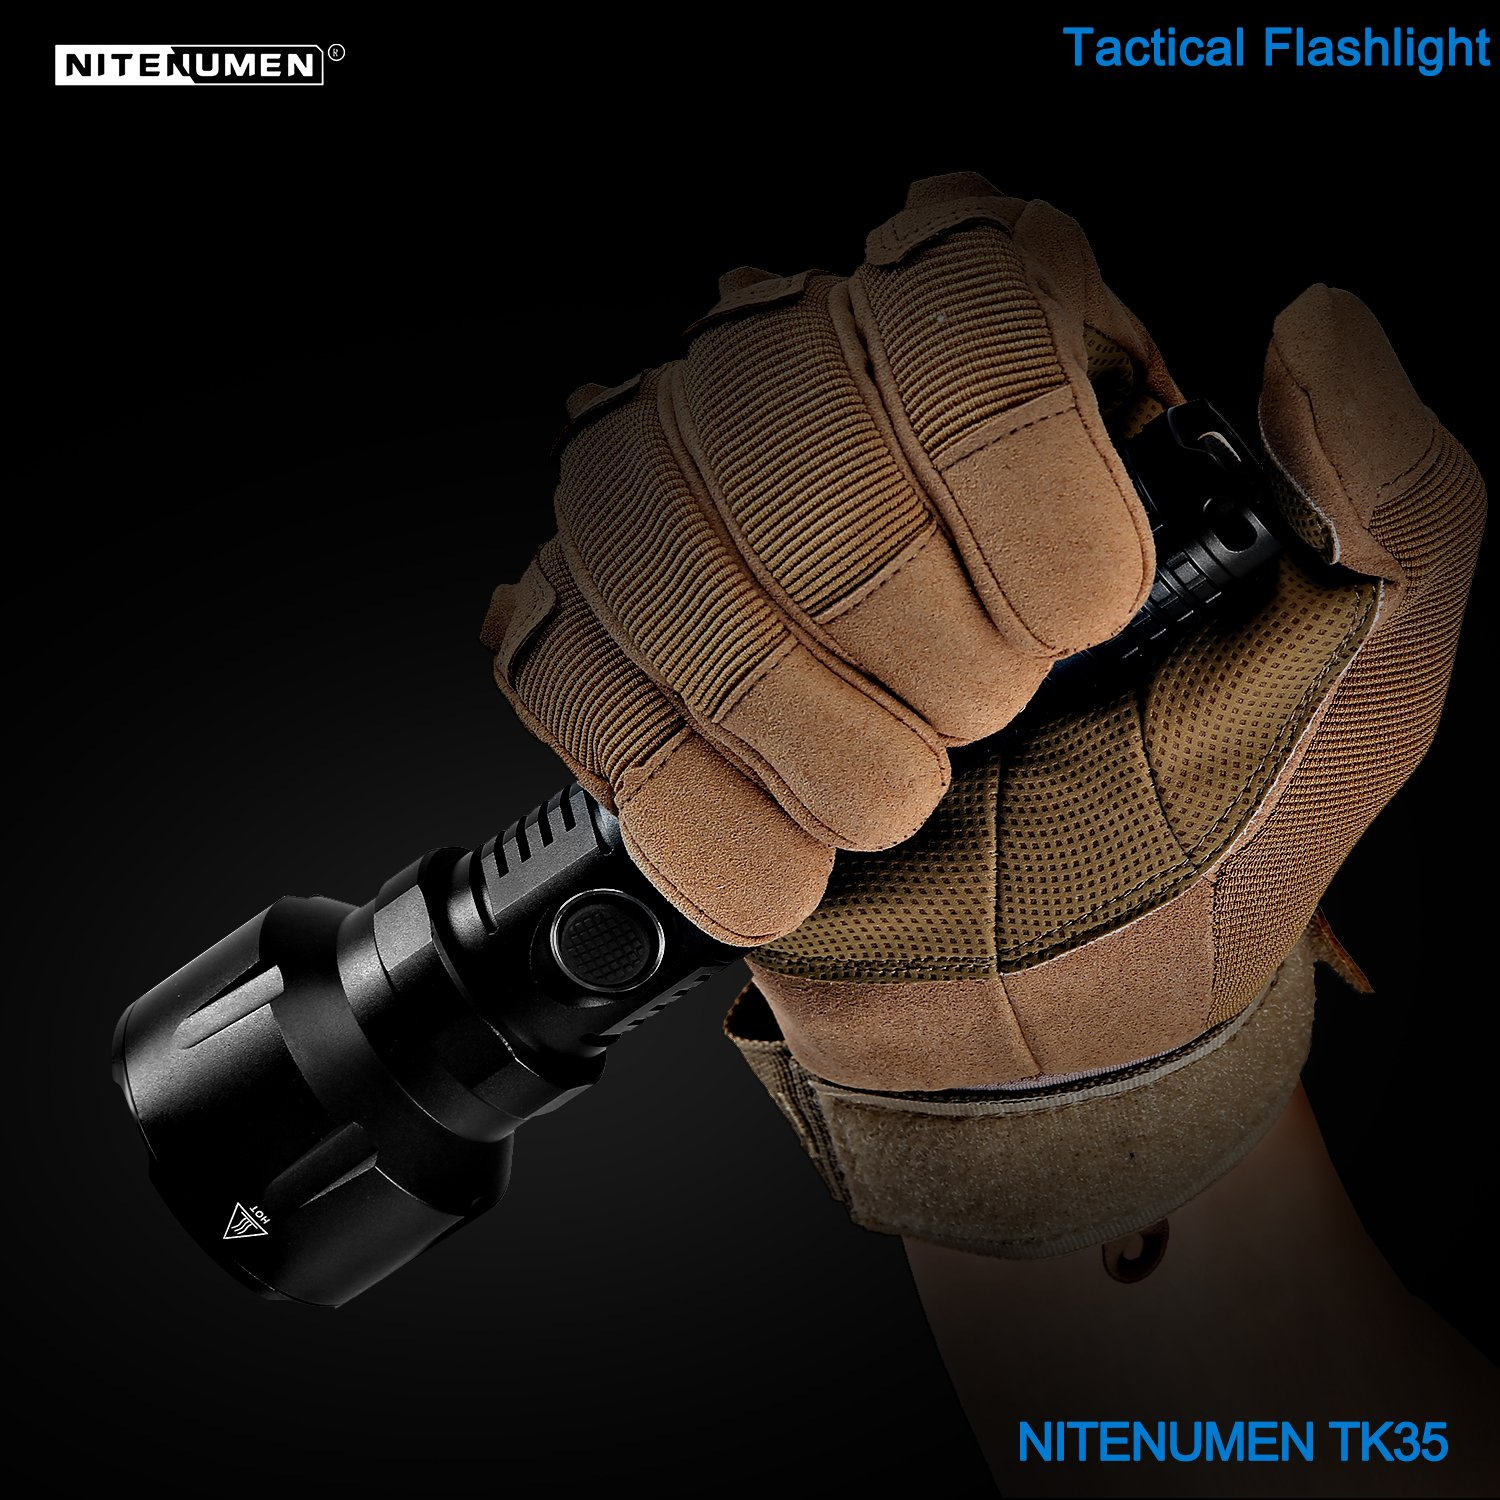 Nitenumen TK35 1120 Lumen USB Rechargeable CREE XM-L LED Tactical Flashlight